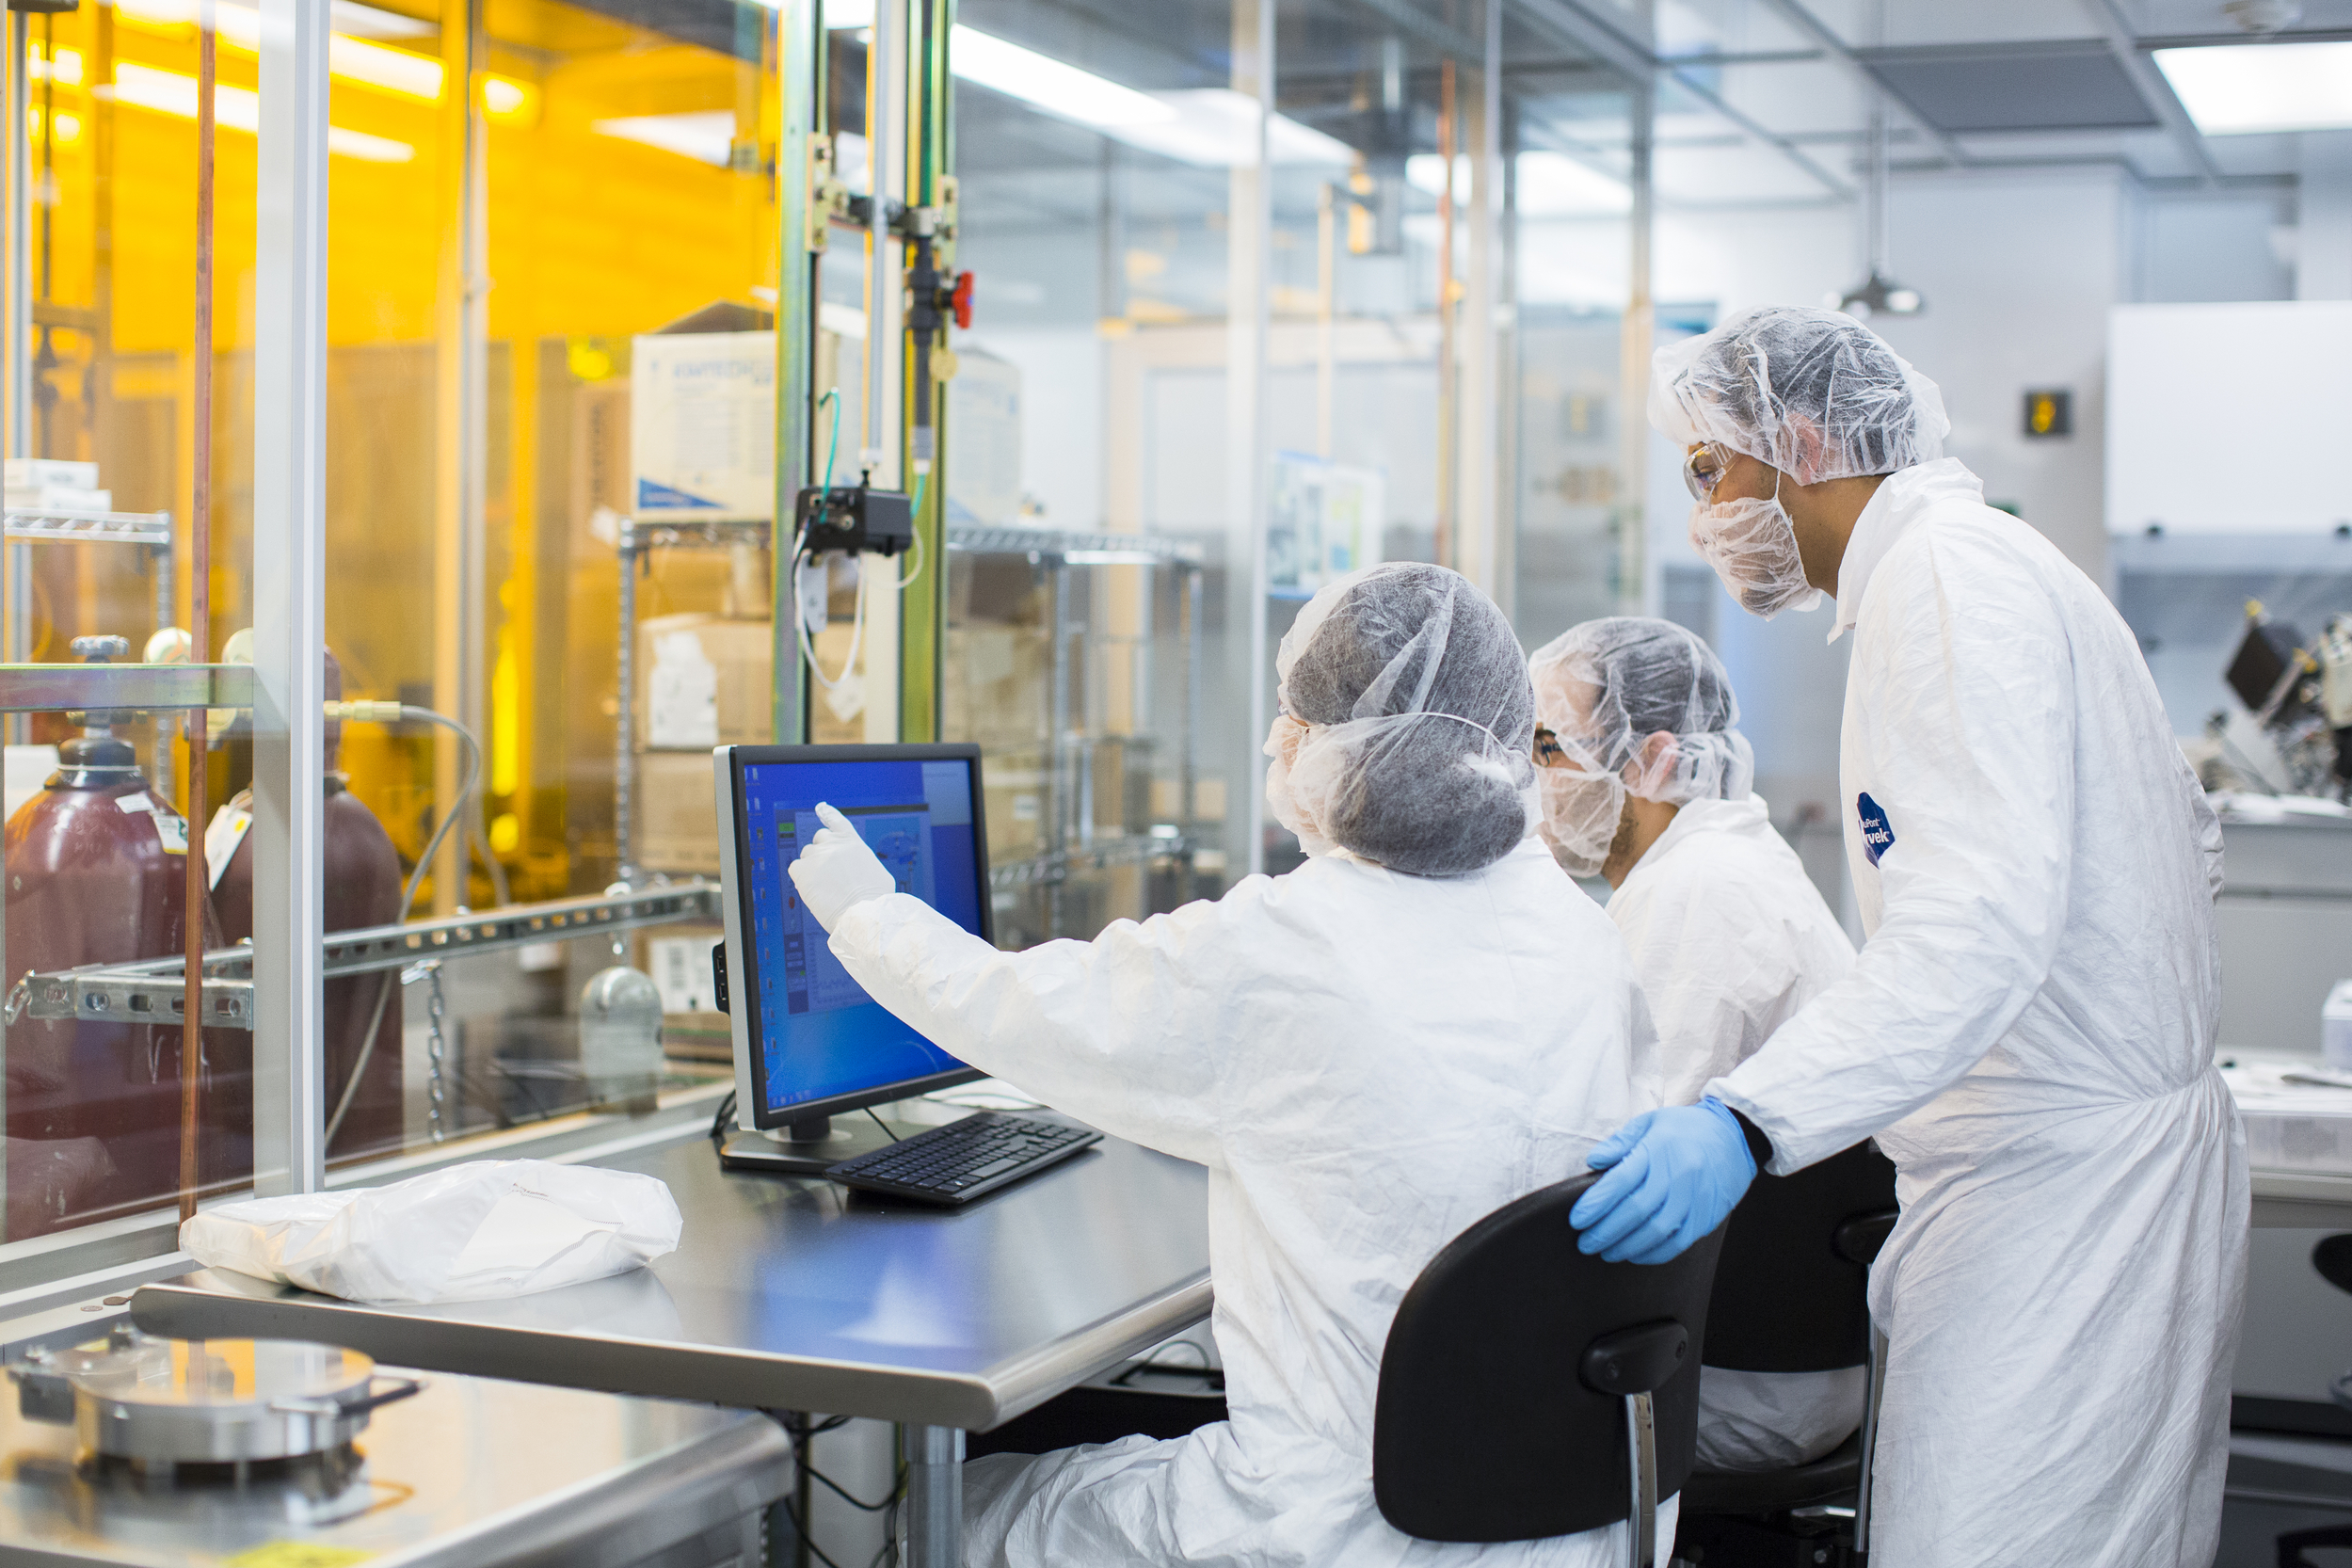 Stem cell laboratory with researchers reviewing information on computer monitor.